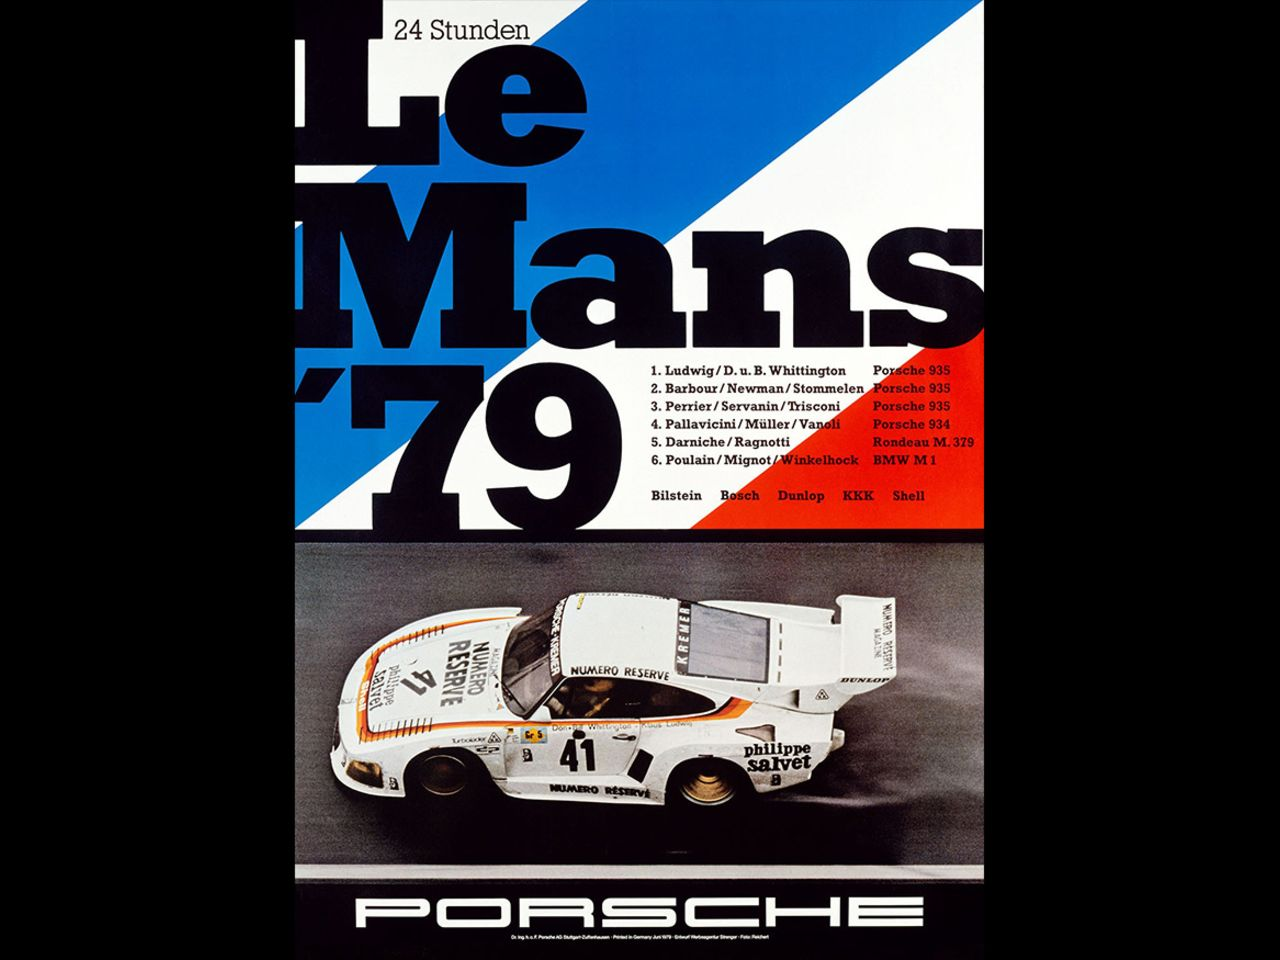 ... into his designs. To mark the triumph at the 24 Hours of Le Mans in 1979, he set the winning Porsche 935 against the drapeau tricolore.